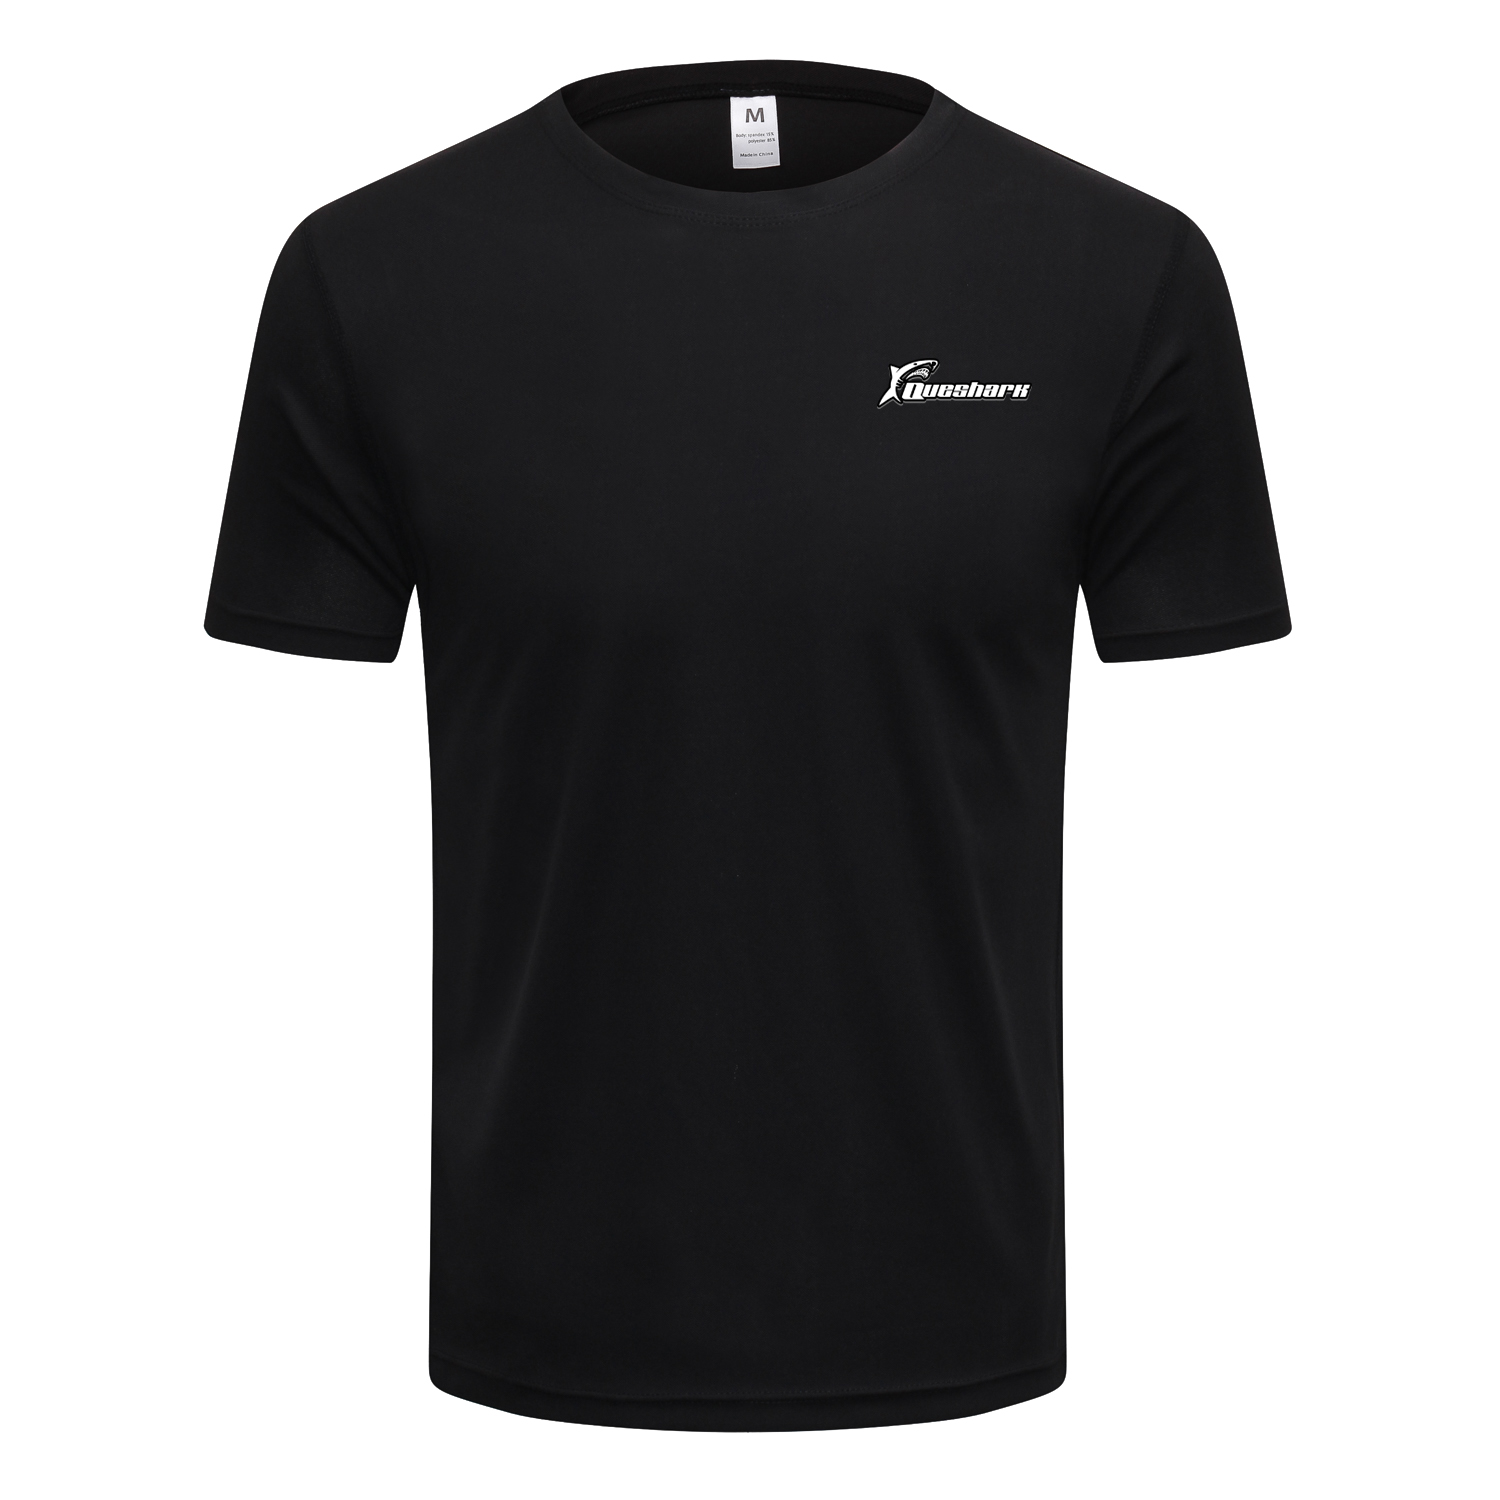 Queshark Compression Mens Short Sleeve T-Shirts Running Mens Shirt Fitness Tight Tennis Soccer Jersey Gym SportswearQueshark Compression Mens Short Sleeve T-Shirts Running Mens Shirt Fitness Tight Tennis Soccer Jersey Gym Sportswear